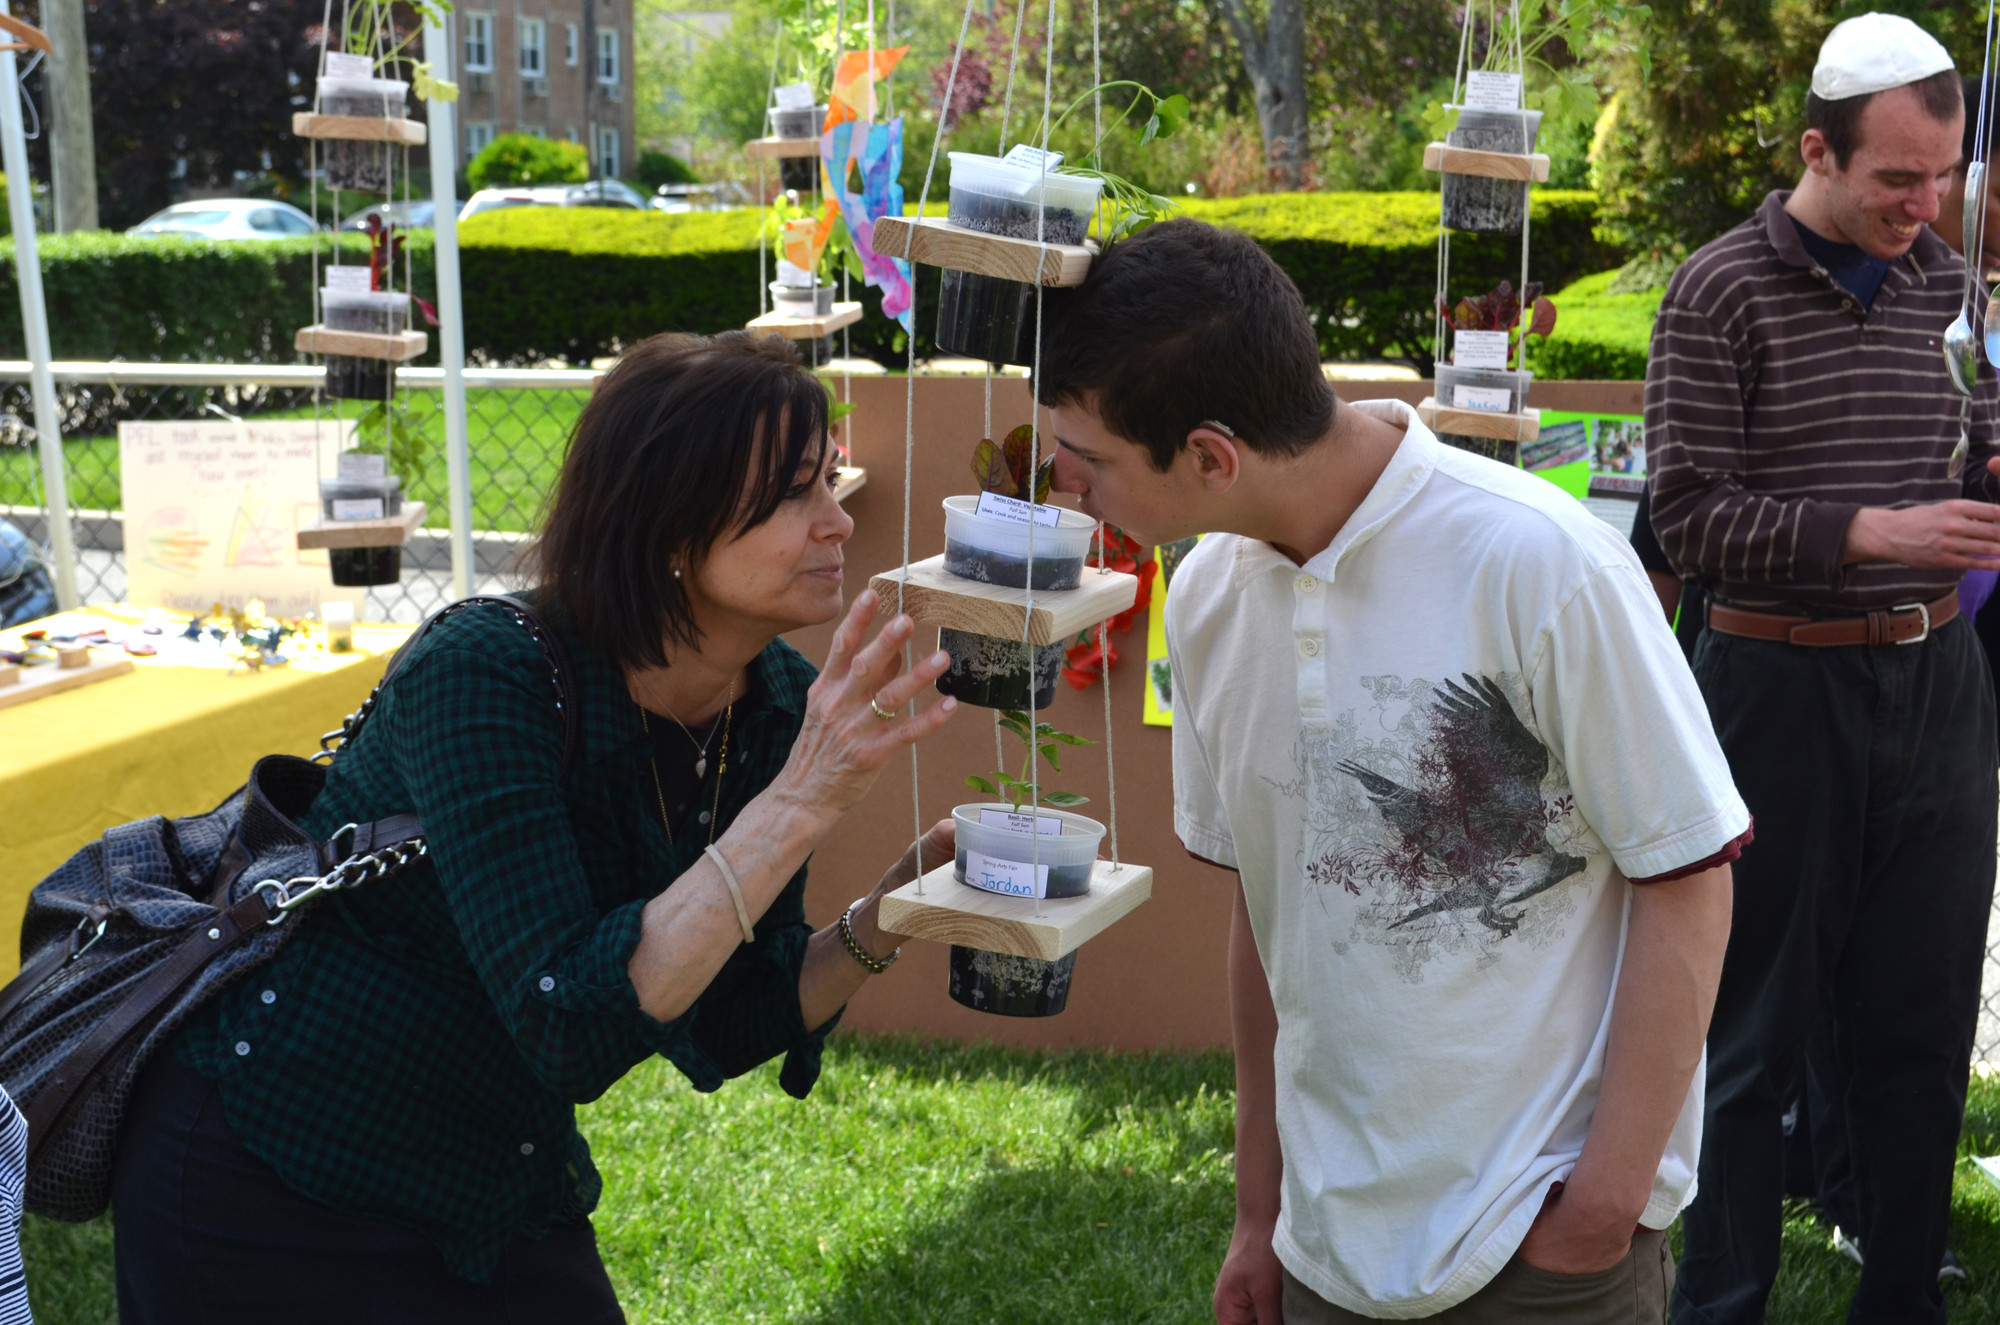 Kulanu's spring arts and science festival engaged the senses as speech therapist Dena Goldblatt and Isaac G., 15, smelled the basil.